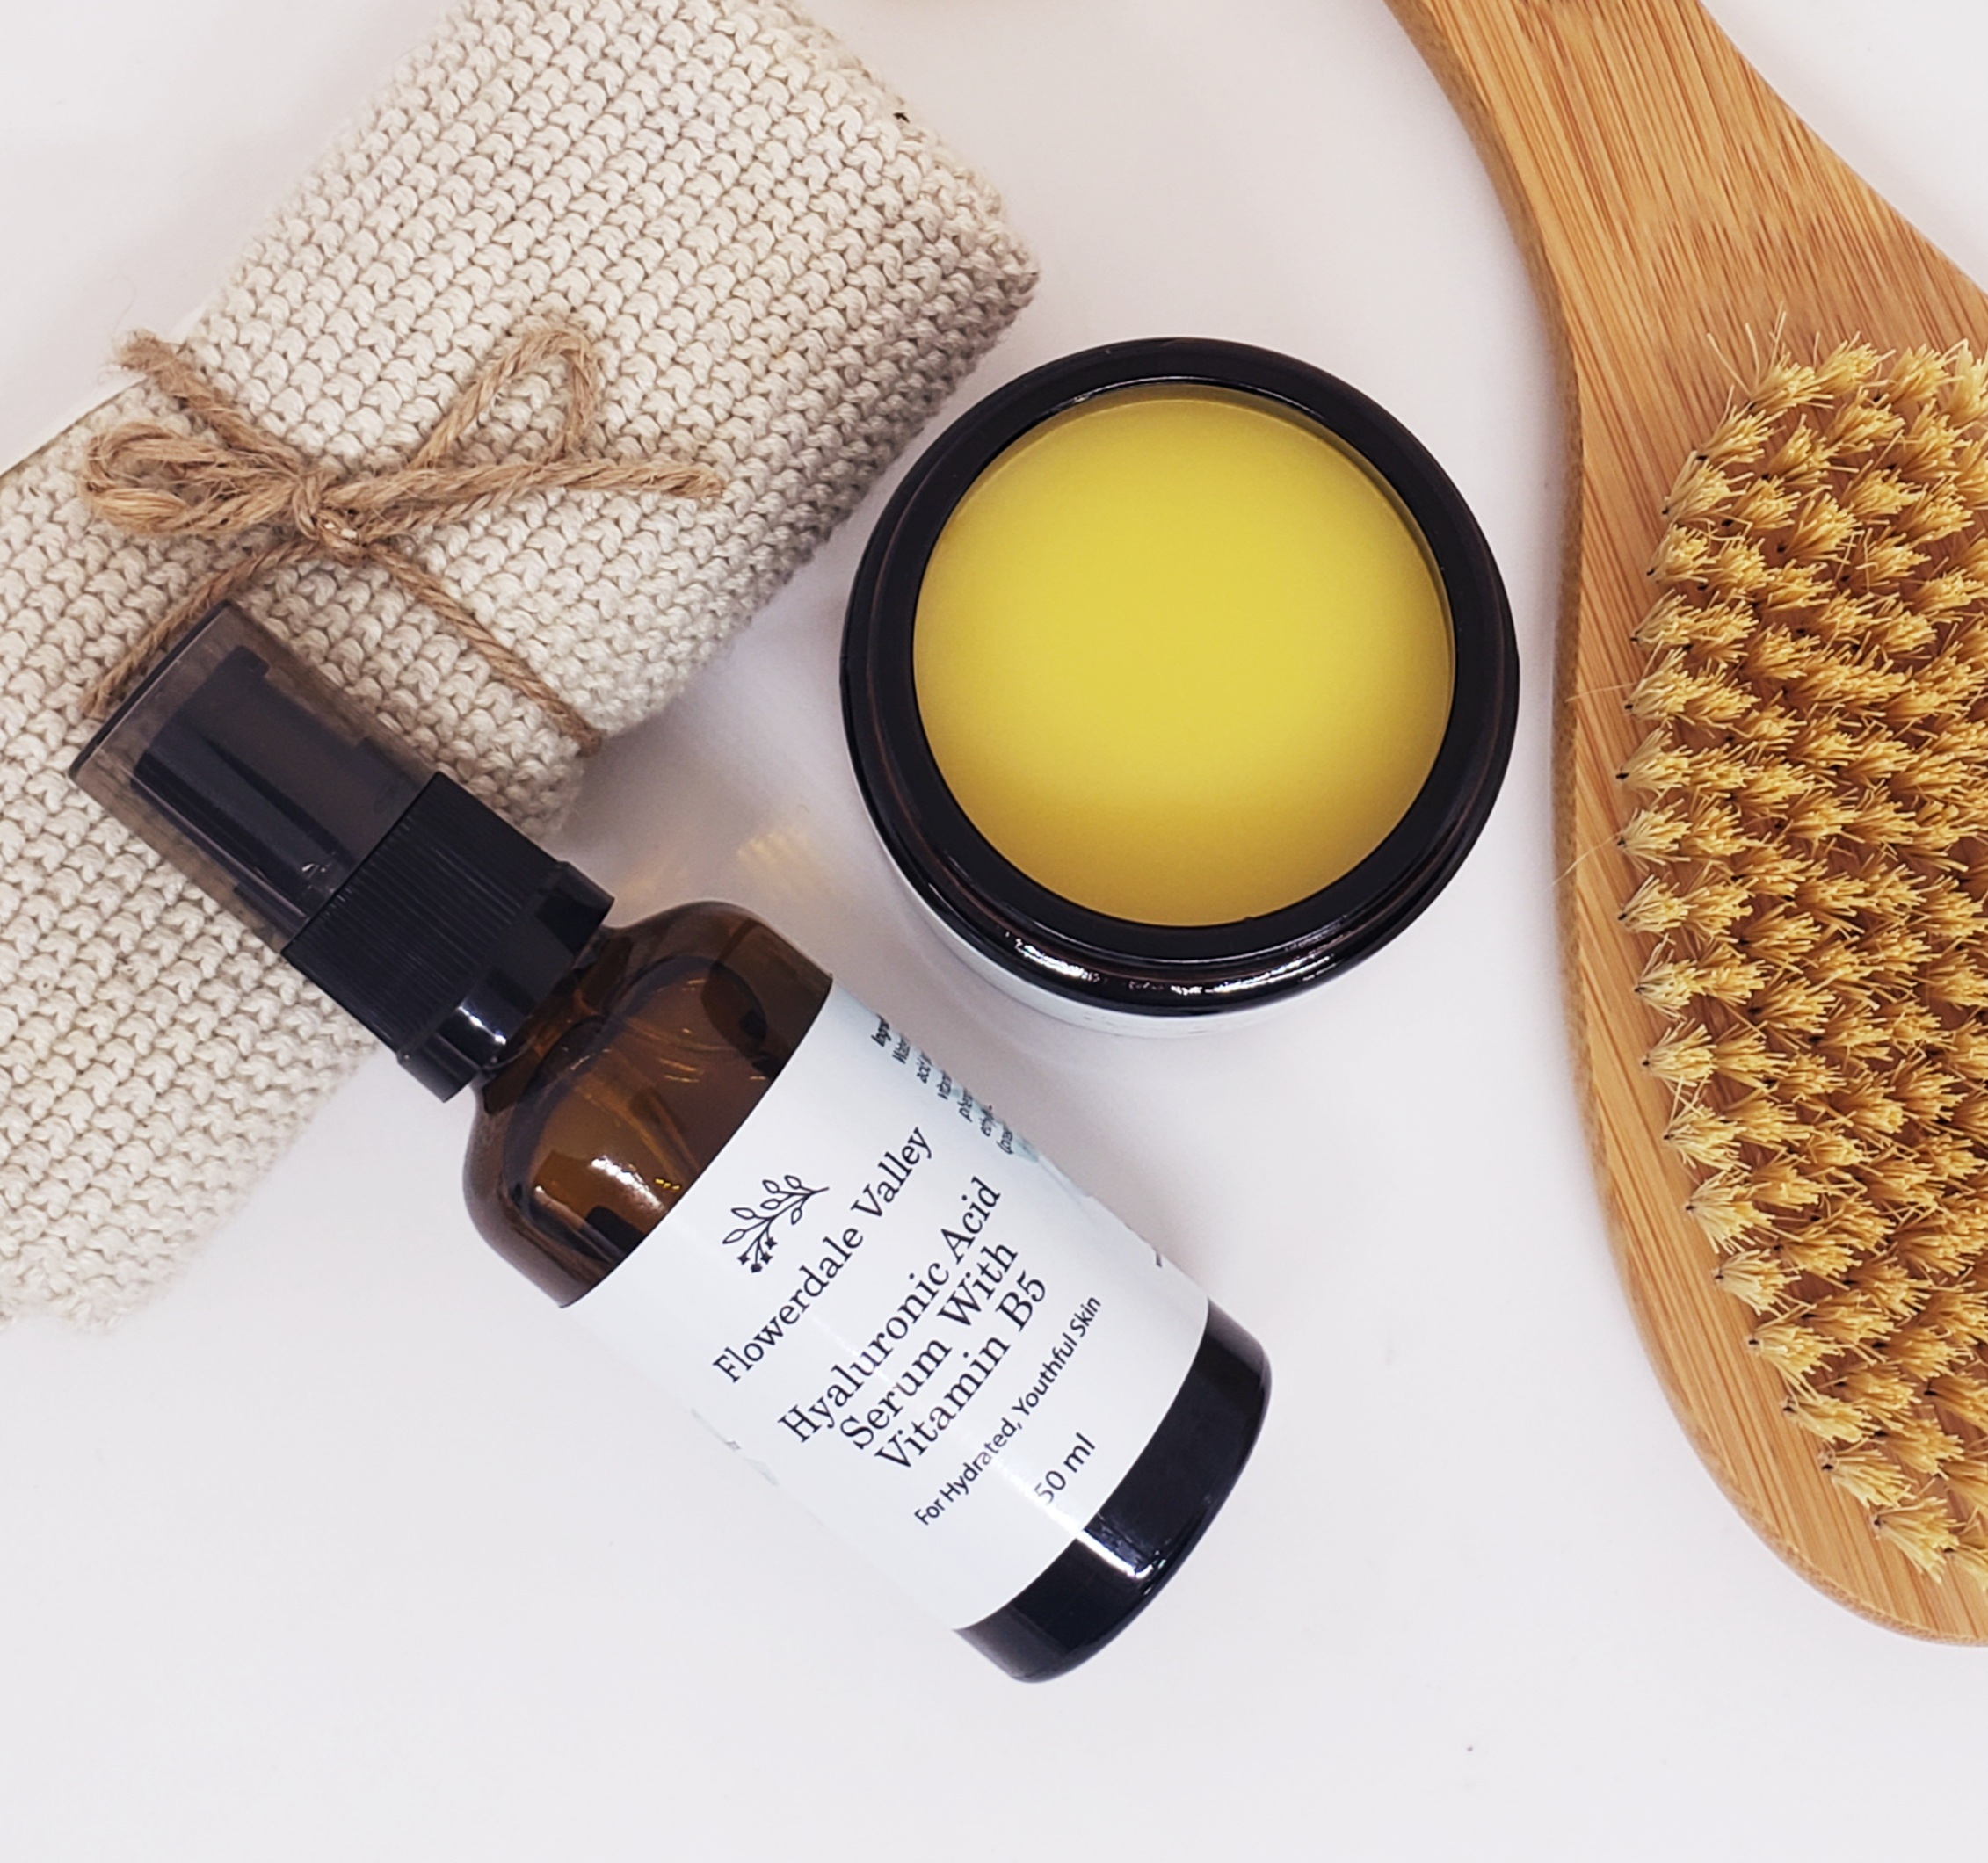 Flowerdale Valley Helps Australians Find the Secret to a Healthy, Happy, Comfortable Skin With All-Natural Skincare Products